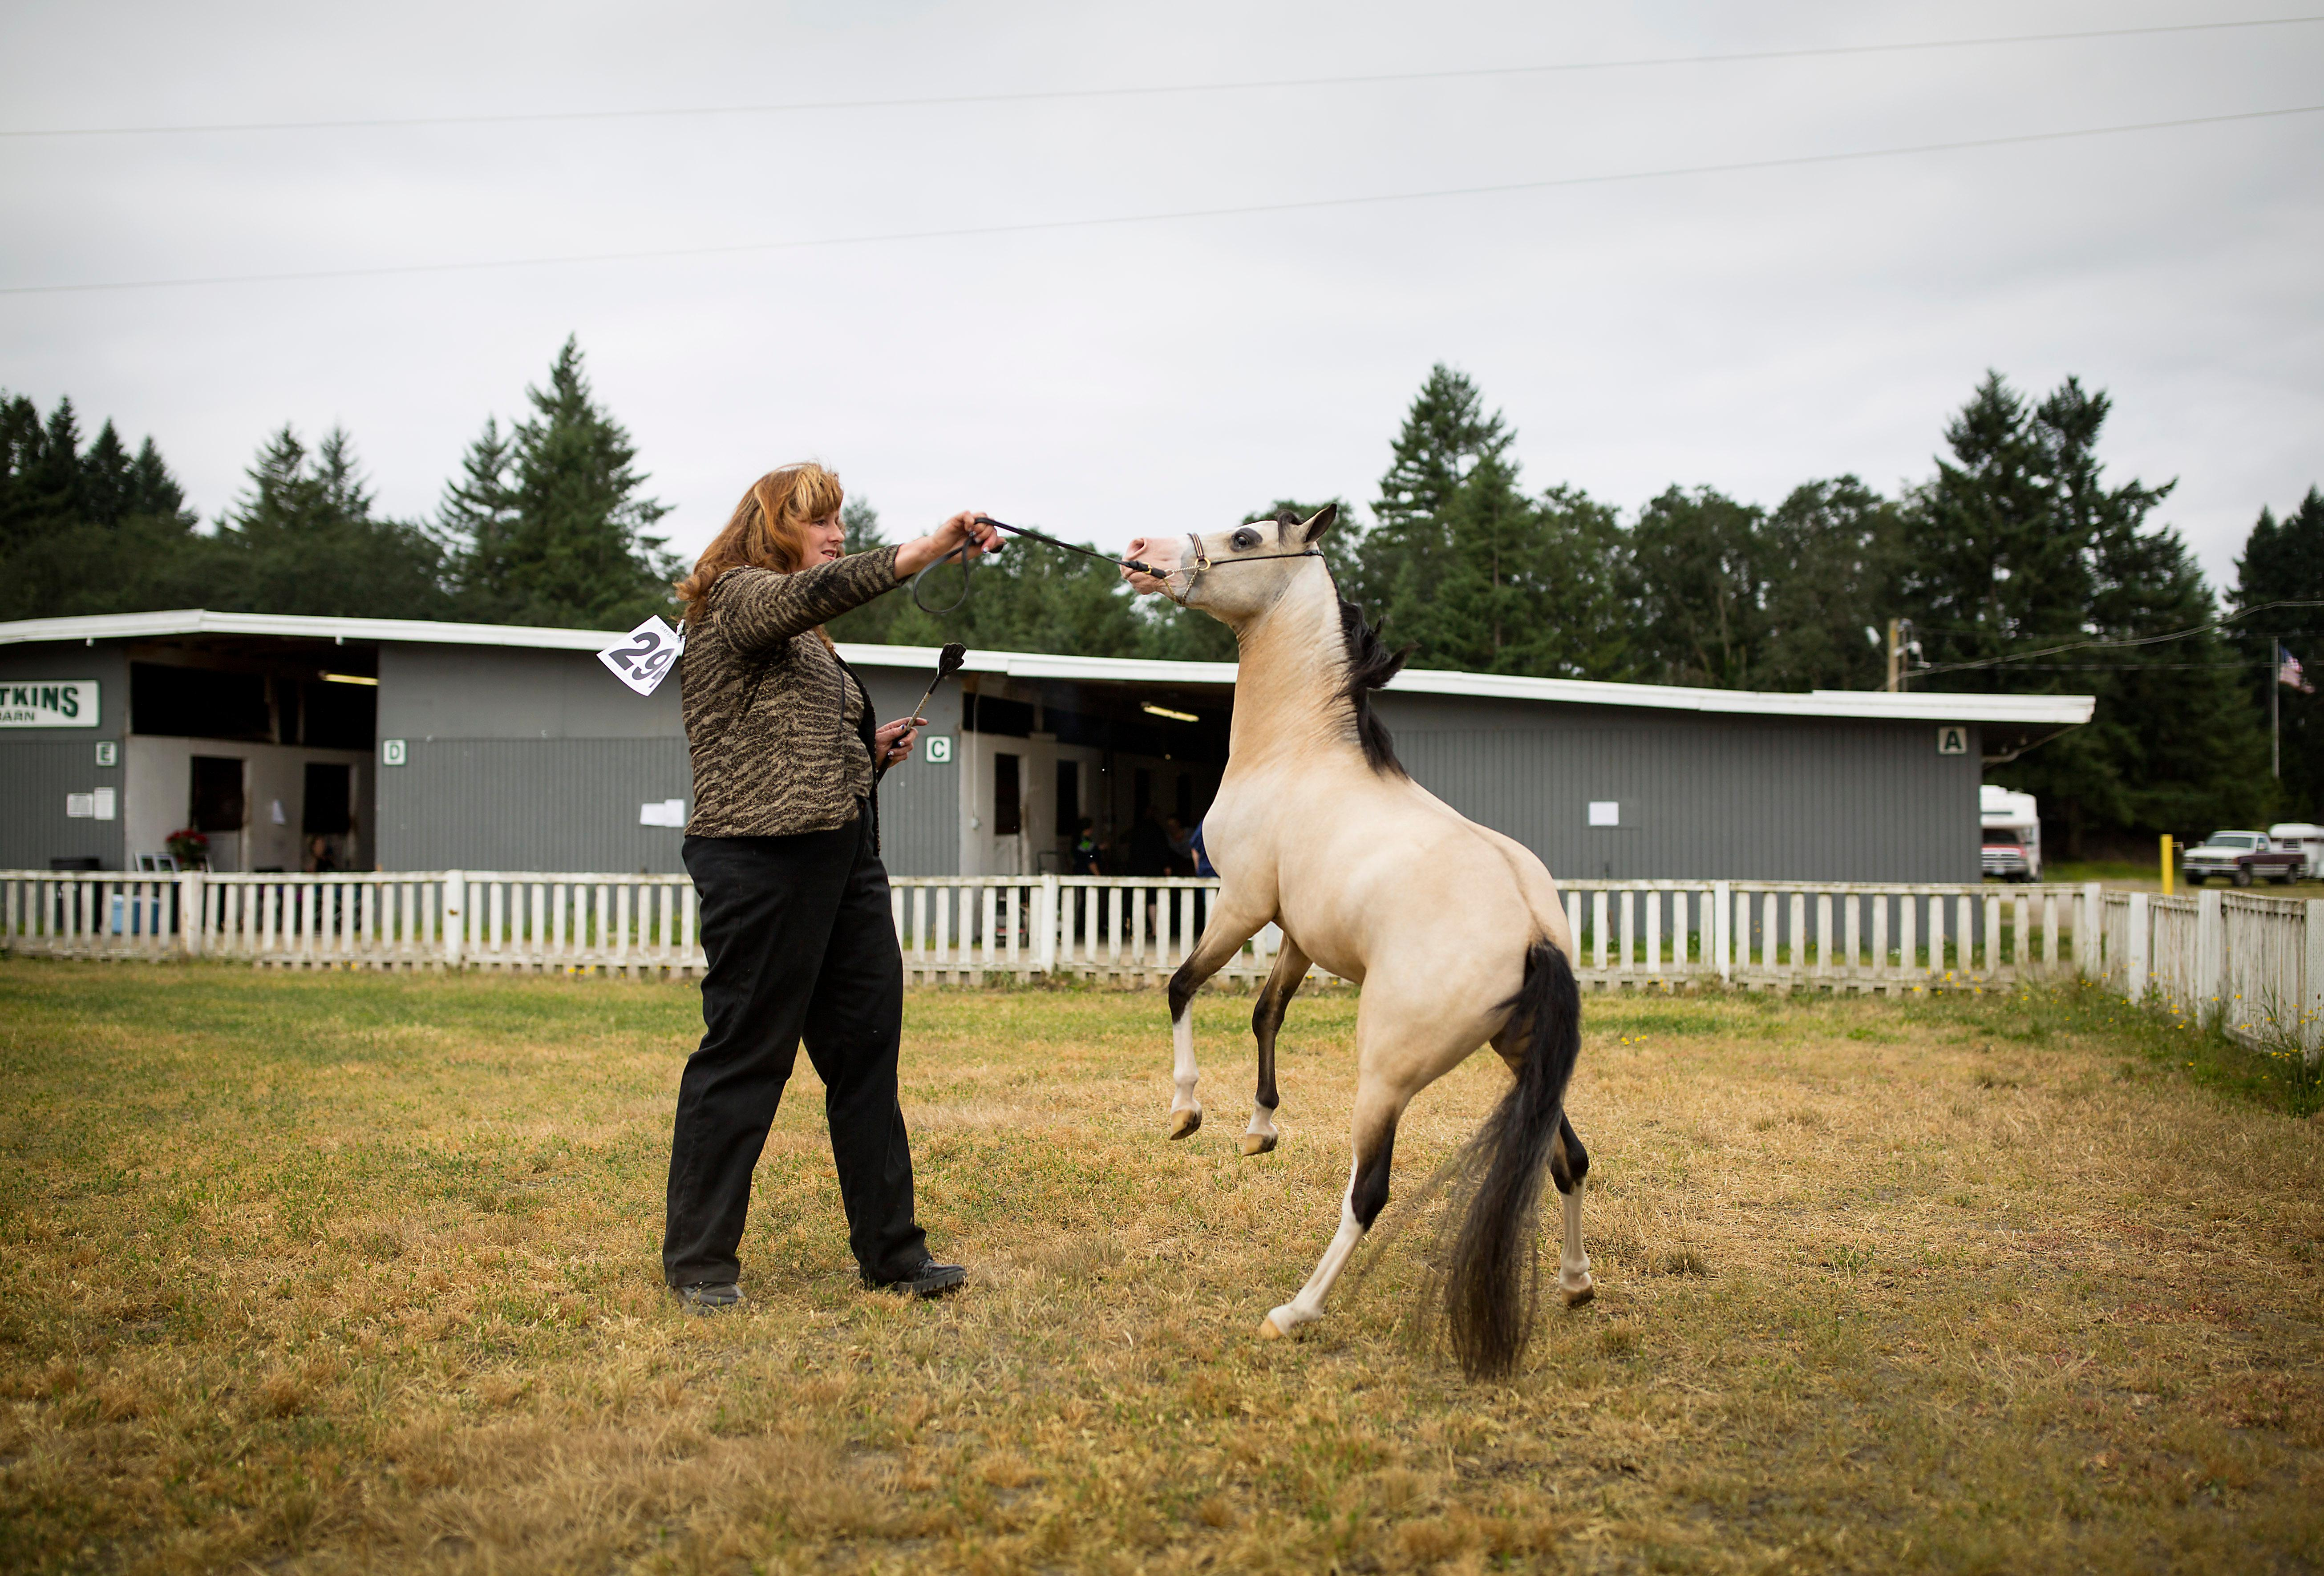 "Miniature horse trainers, professionals, and enthusiasts made their way out to the Evergreen Spectacular 12th Miniature Horse Show, put on the by Evergreen Miniature Horse Club, at the Washington Horseman Tacoma Unit #1 in Spanaway. The show has a Seahawks, ""12th man"" theme, and the judging of the minature horses and ponies will continue over the weekend. (Sy Bean / Seattle Refined)"